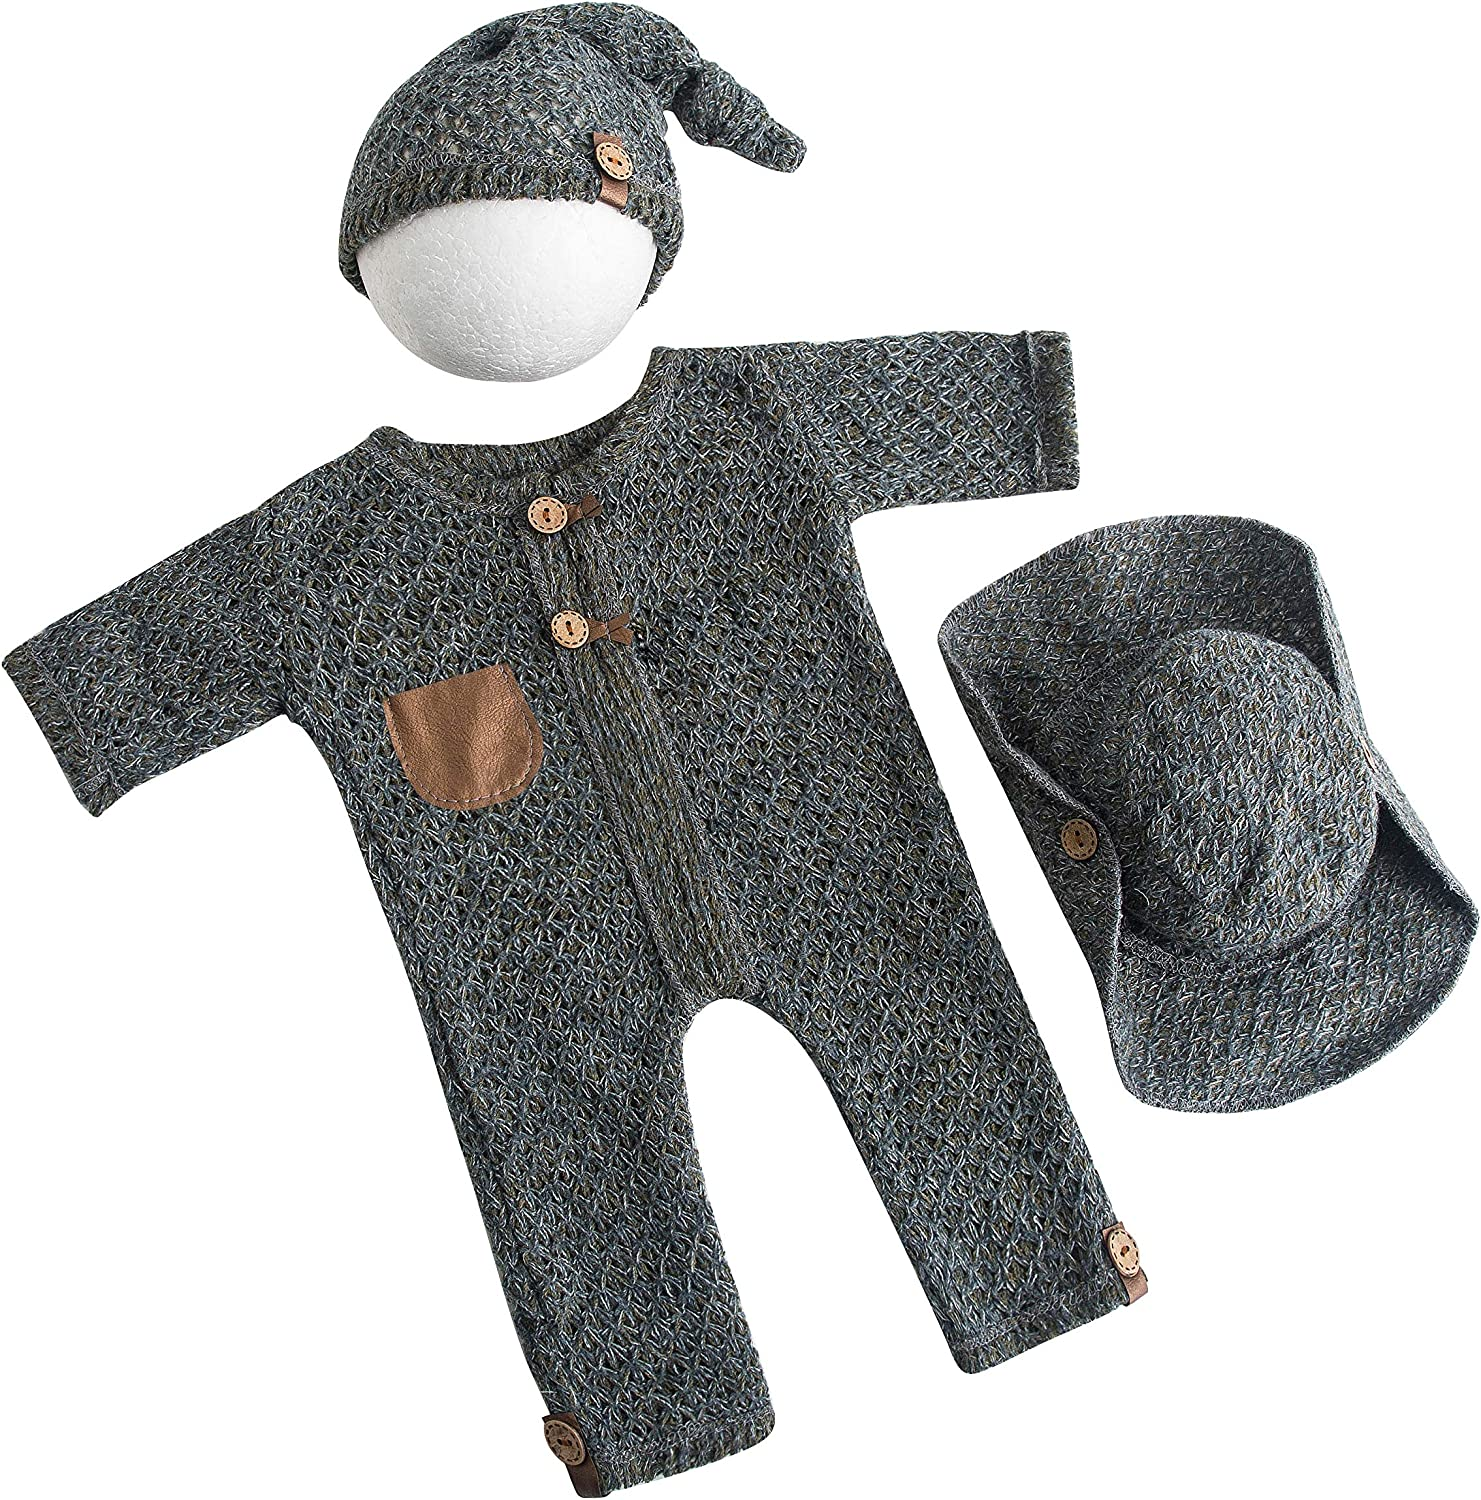 Newborn Photo Japan's largest assortment Props Daily bargain sale Outfits Baby Knit Prop Outfit Phot Boy